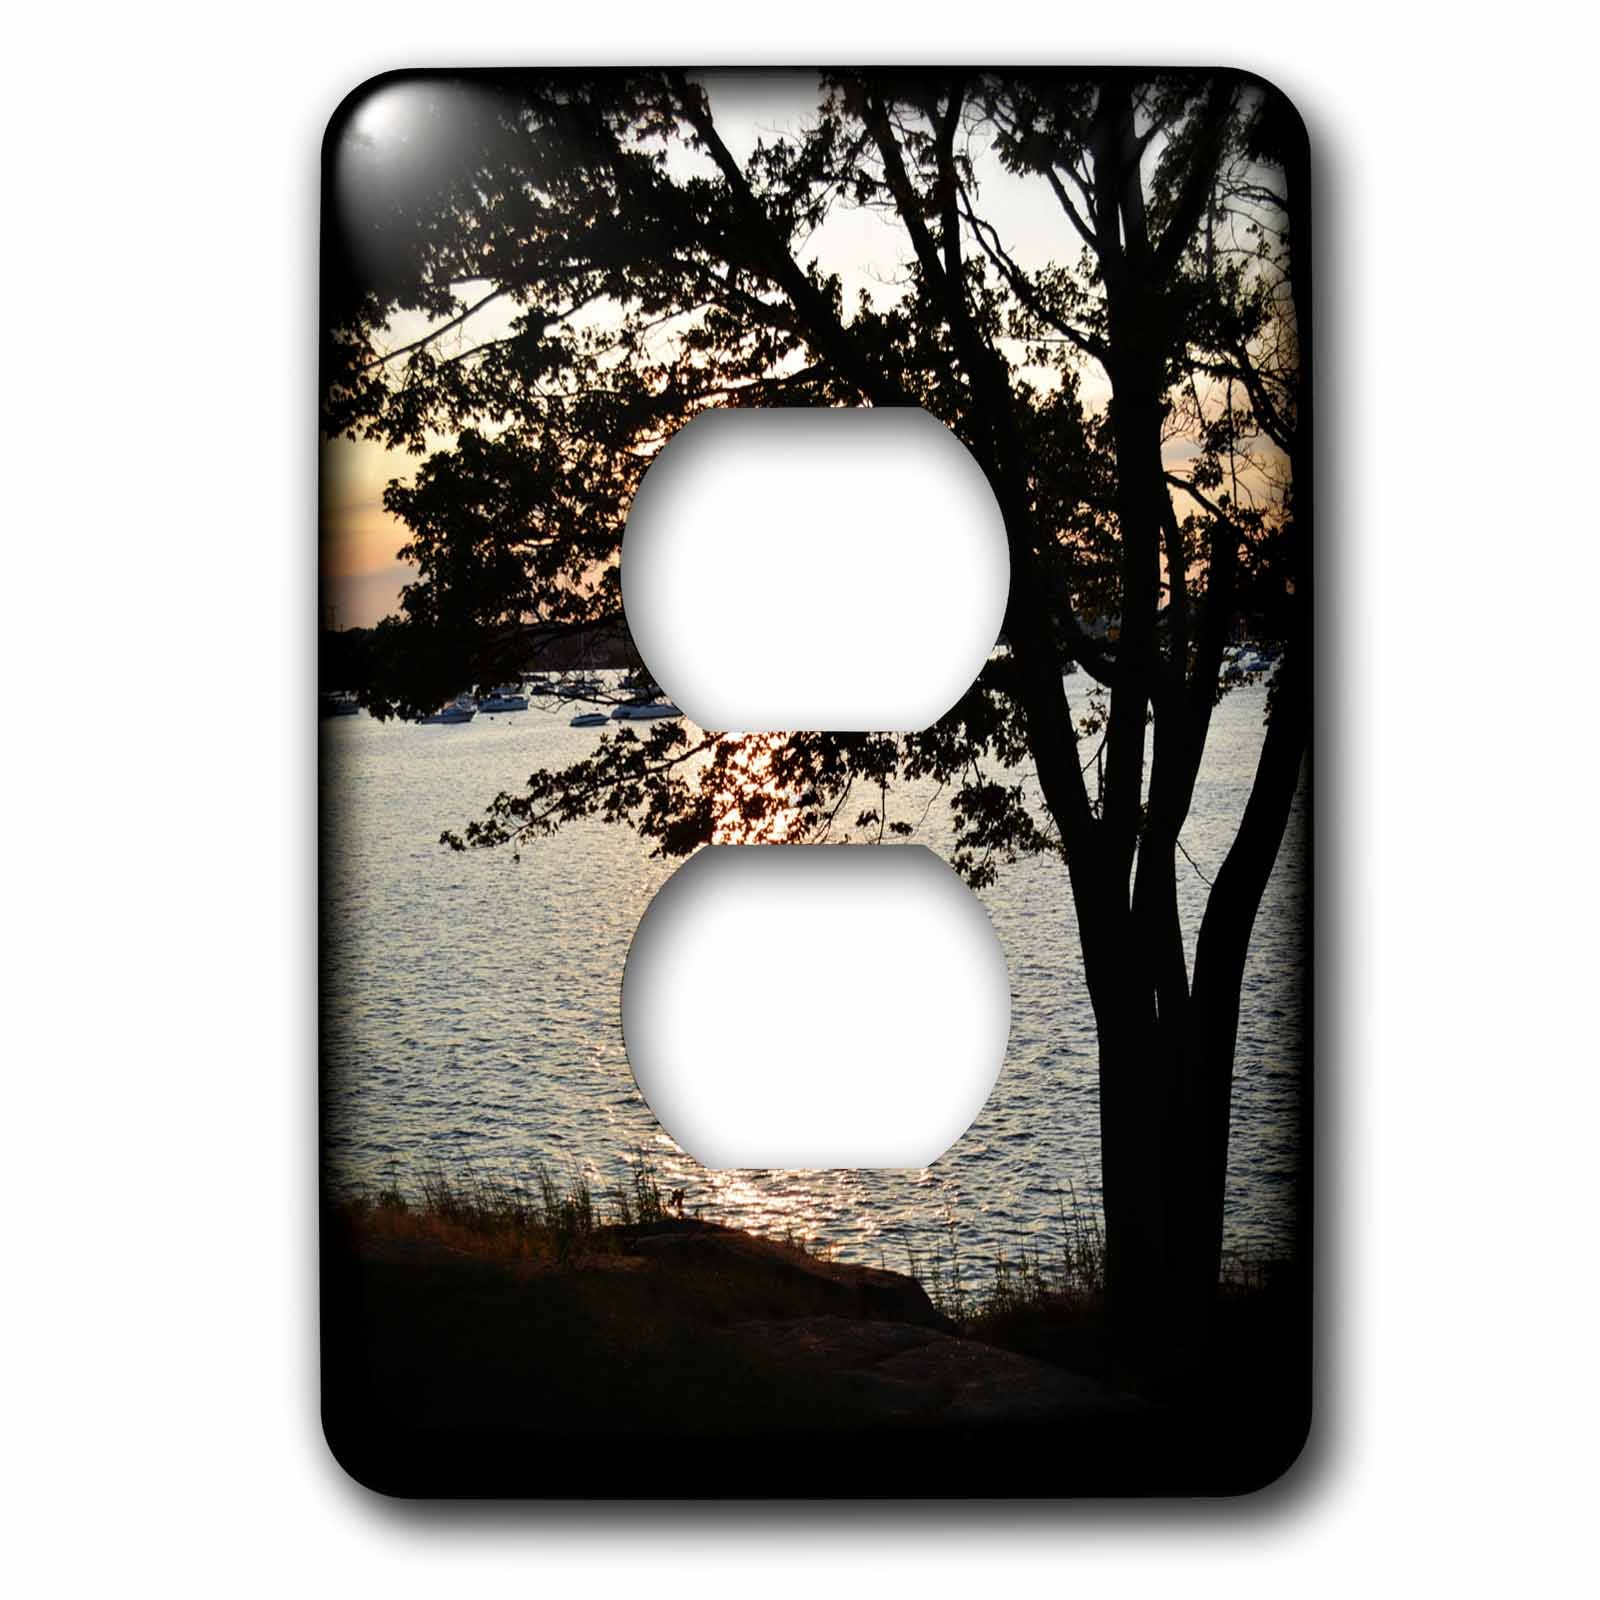 3dRose WhiteOaks Photography and Artwork - Waterscape - Twilight Has Fallen is a photo right after twilight before sunset - Light Switch Covers - 2 plug outlet cover (lsp_265371_6)